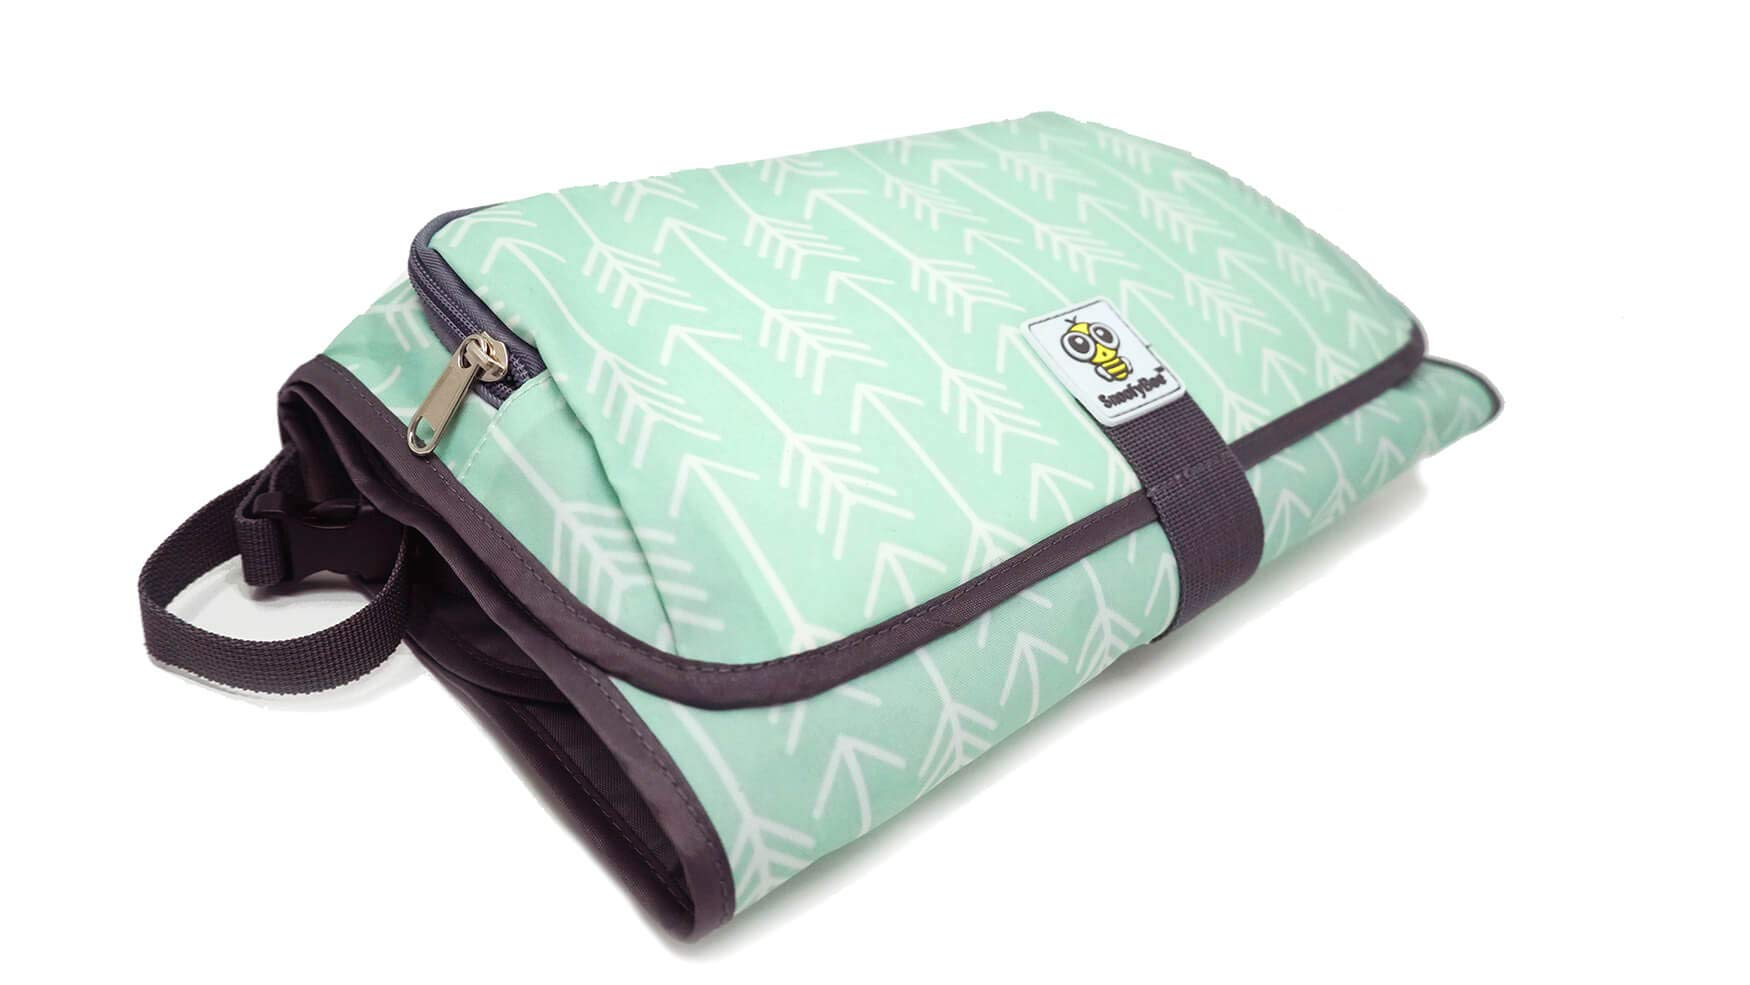 SnoofyBee Large Baby-Changing Travel Pad Diaper Clutch, Accessories for Babies Clean Hands Changing Pad Excursion Edition (Mint Arrow) by SnoofyBee (Image #2)